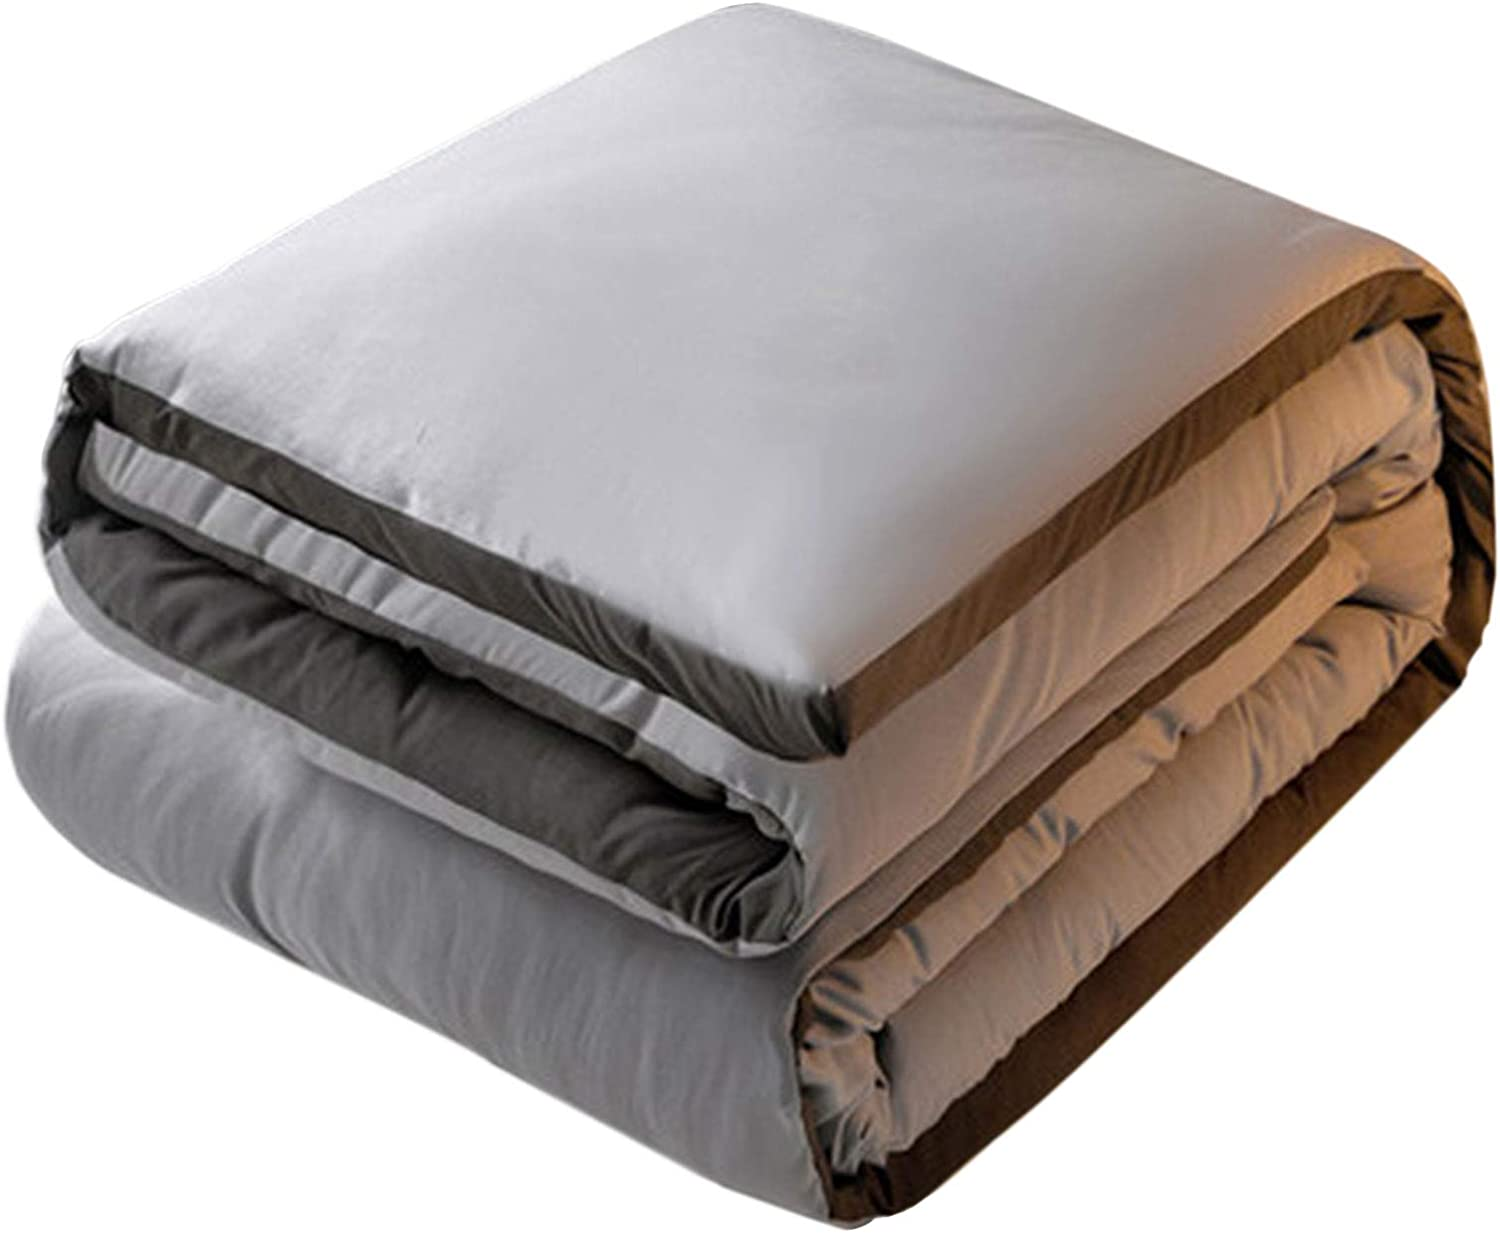 middle Long-Staple Cotton Quilt Free Shipping Cheap Bargain Classic Gift Thickened Duvet 3